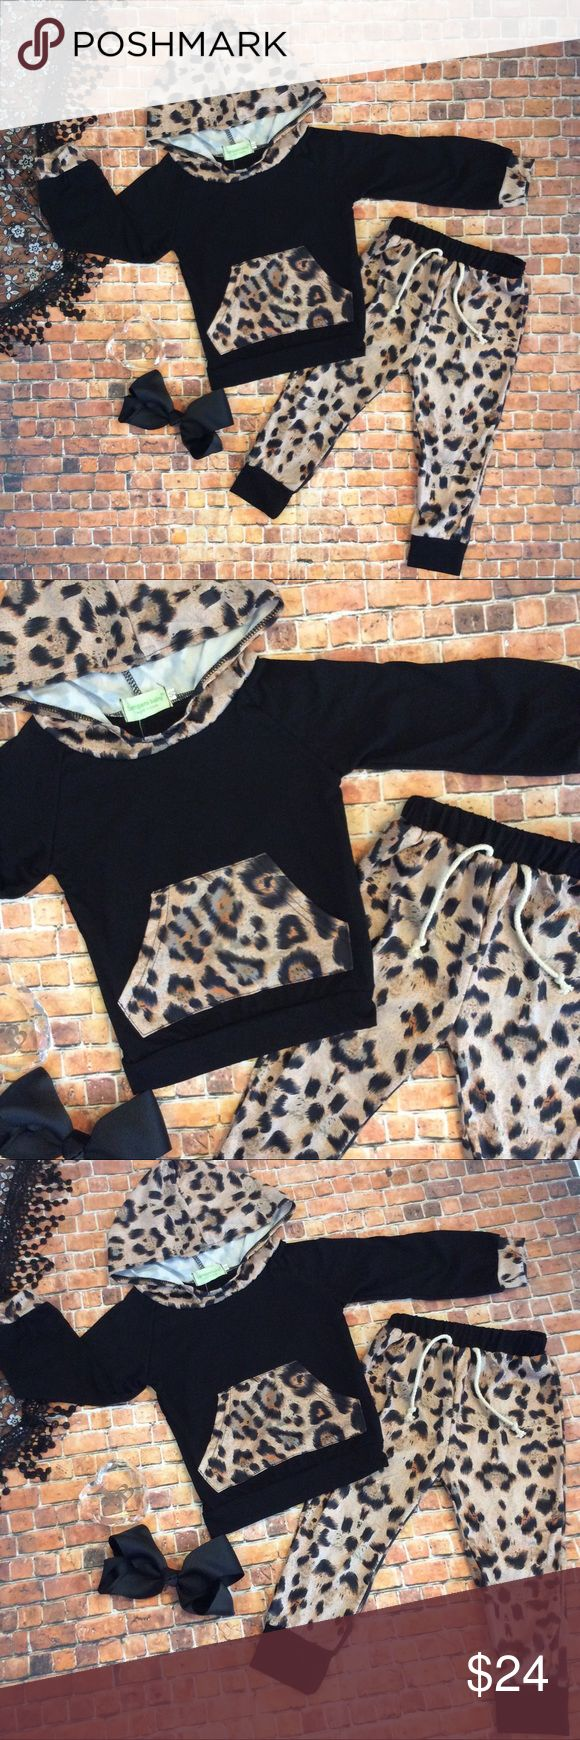 Boutique Baby Girl 2pc hoodie Track Suit Precious animal print & black 2 pc hooded outfit. Black top with animal print hoodie, large pocket& pants. Hair bow is available for purchase on a separate listing. Bundle to save $$. Thanks! Matching Sets